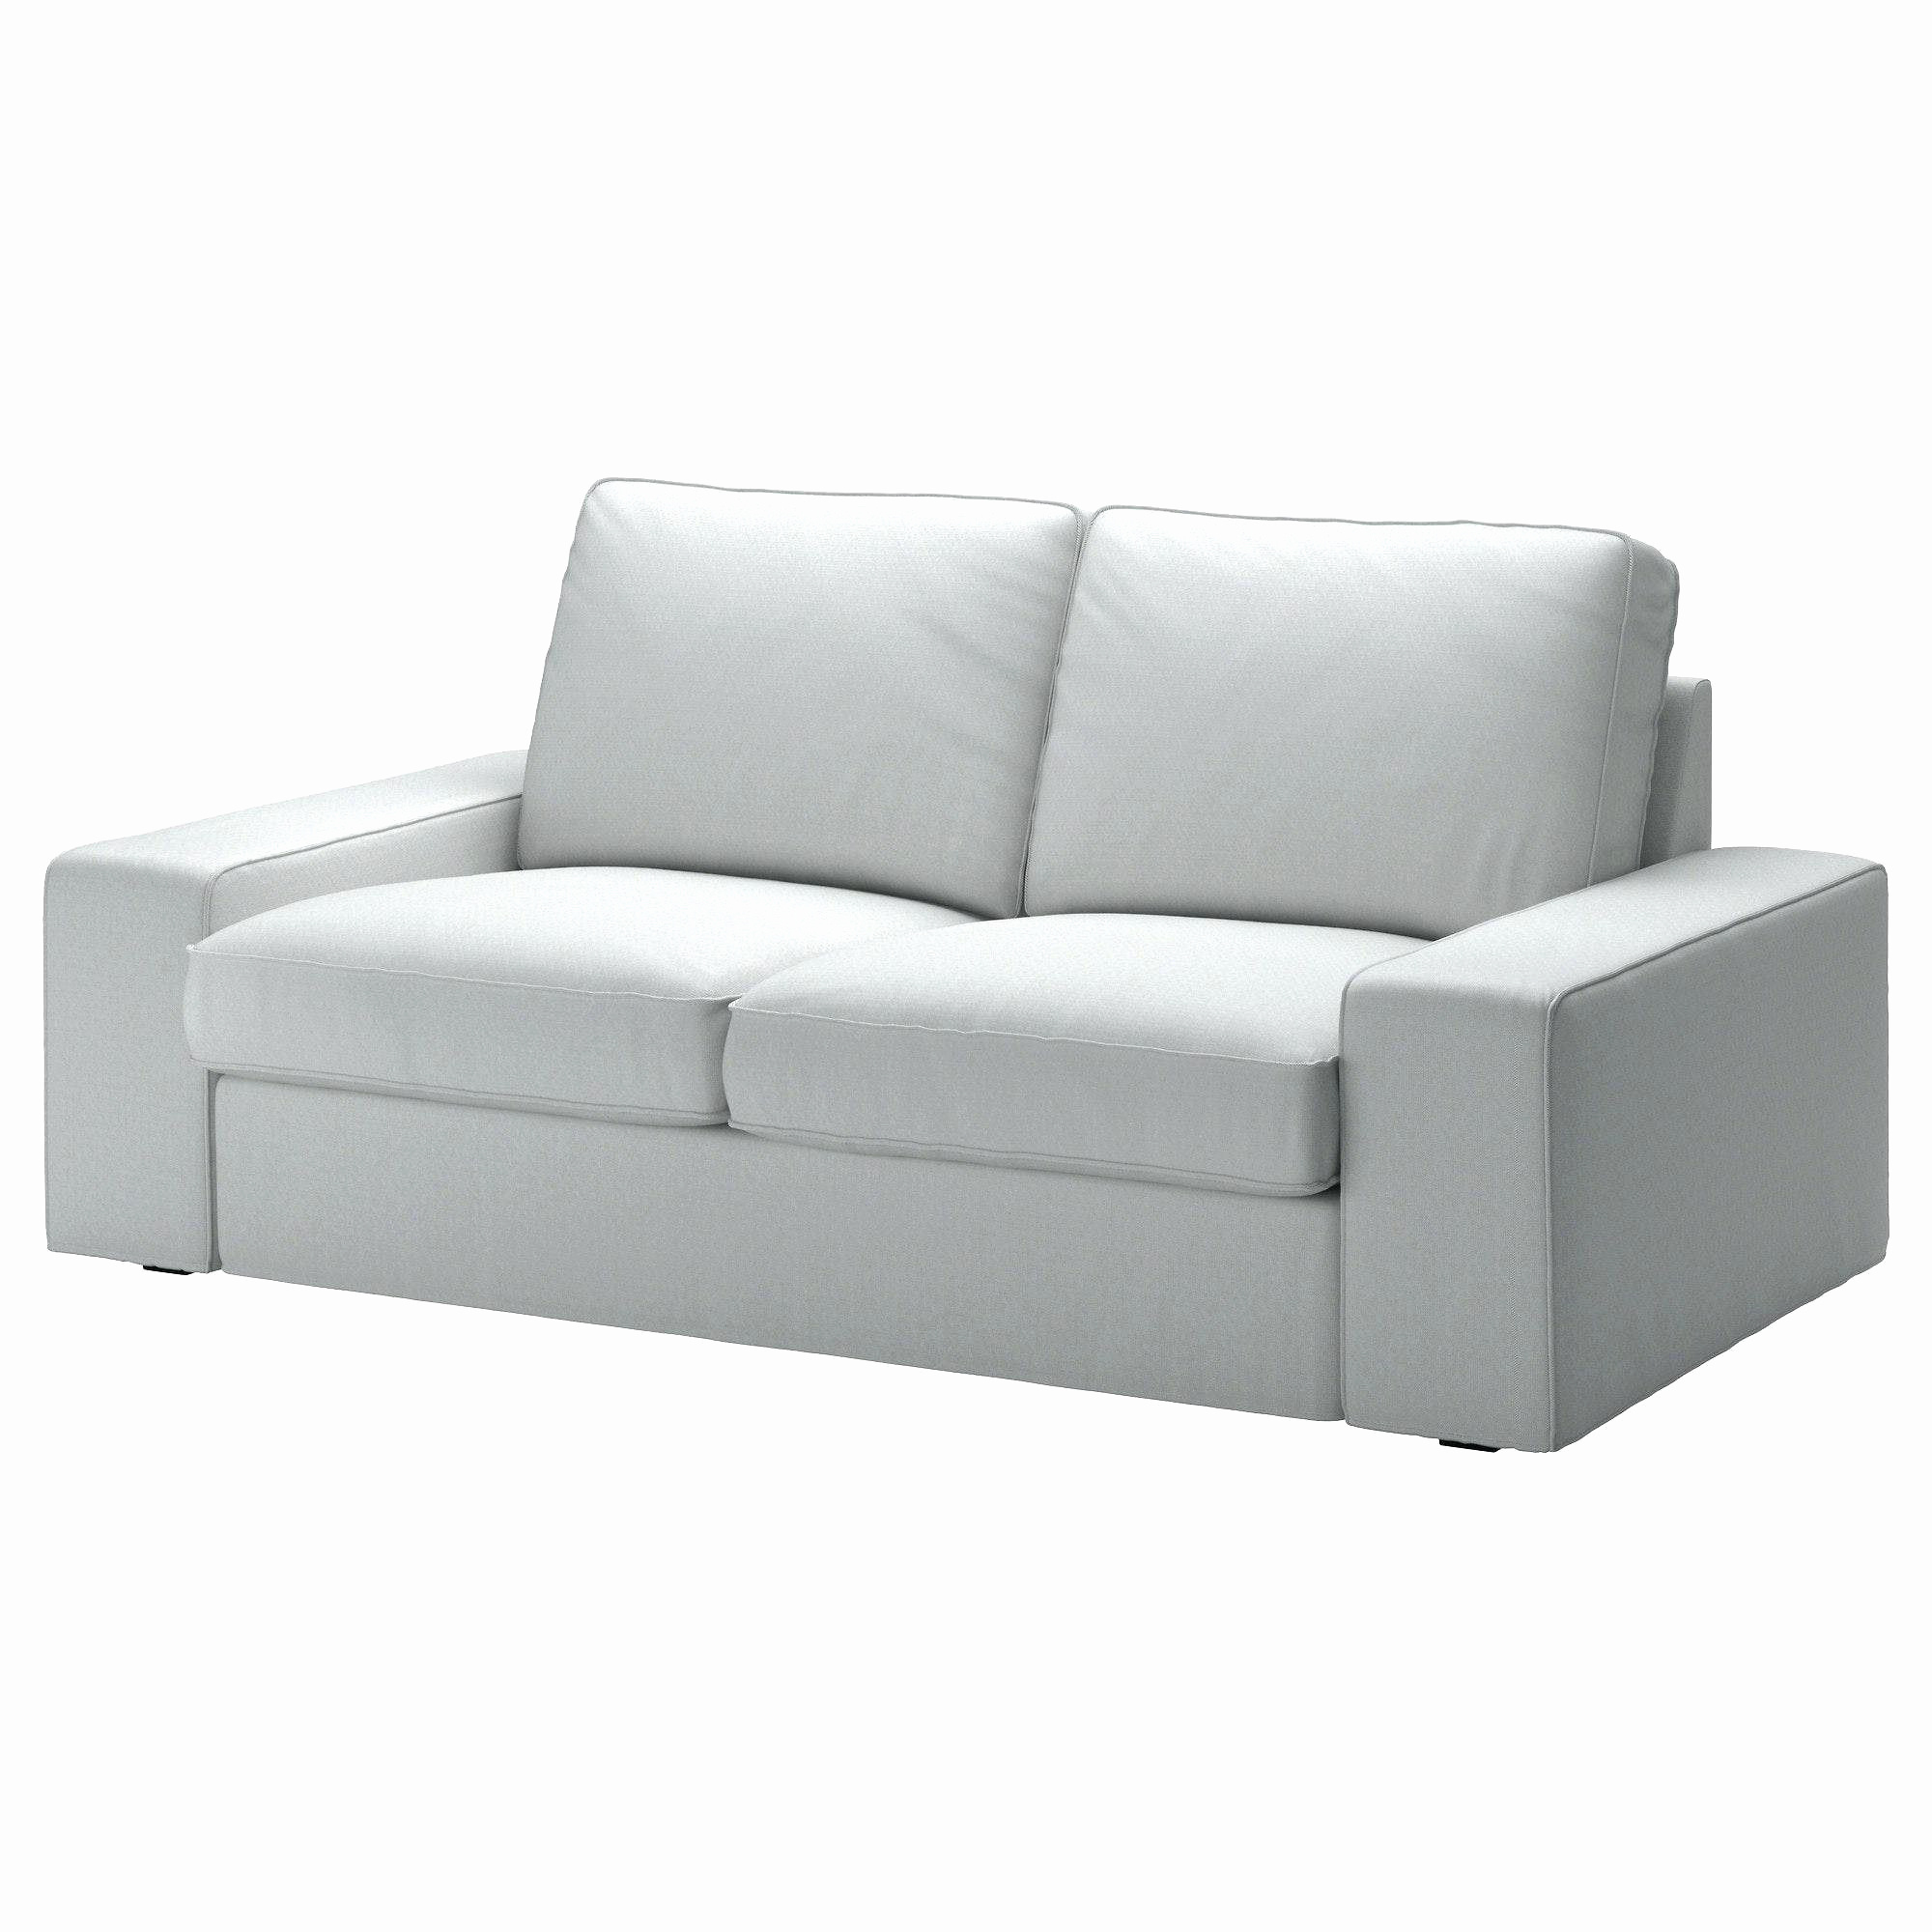 Fauteuil Convertible 1 Place Fly Impressionnant Fauteuil 1 Interieur Fauteuil Convertible 1 Place Fly Idees Conception Jardin Idees Conception Jardin